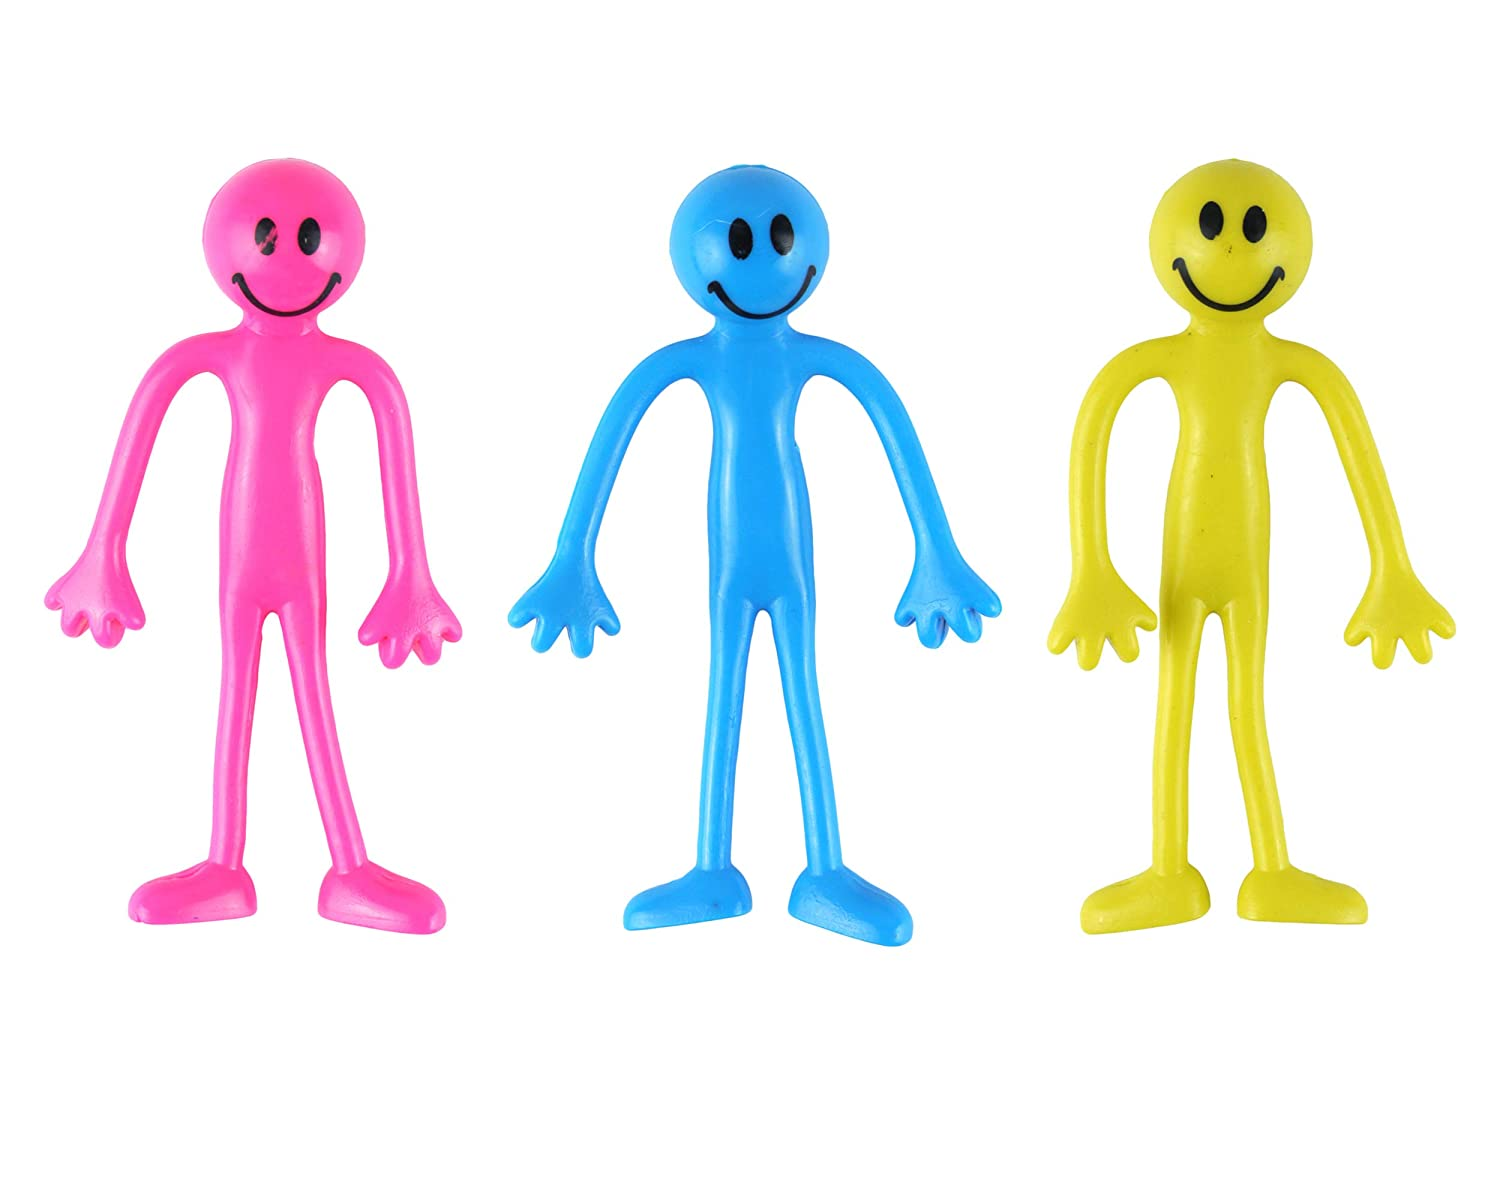 3 x Bendable Figures Characters Smilers - Fiddle Toys - Sensory Toys - 3 Mixed Colour Smiley Bendy Men Yellow, Blue and Pink - Relief from Stress, Suitable Fidget Toys for Autism, ADD, ADHD, ASD SPD & OCD D.A.Y. Republic